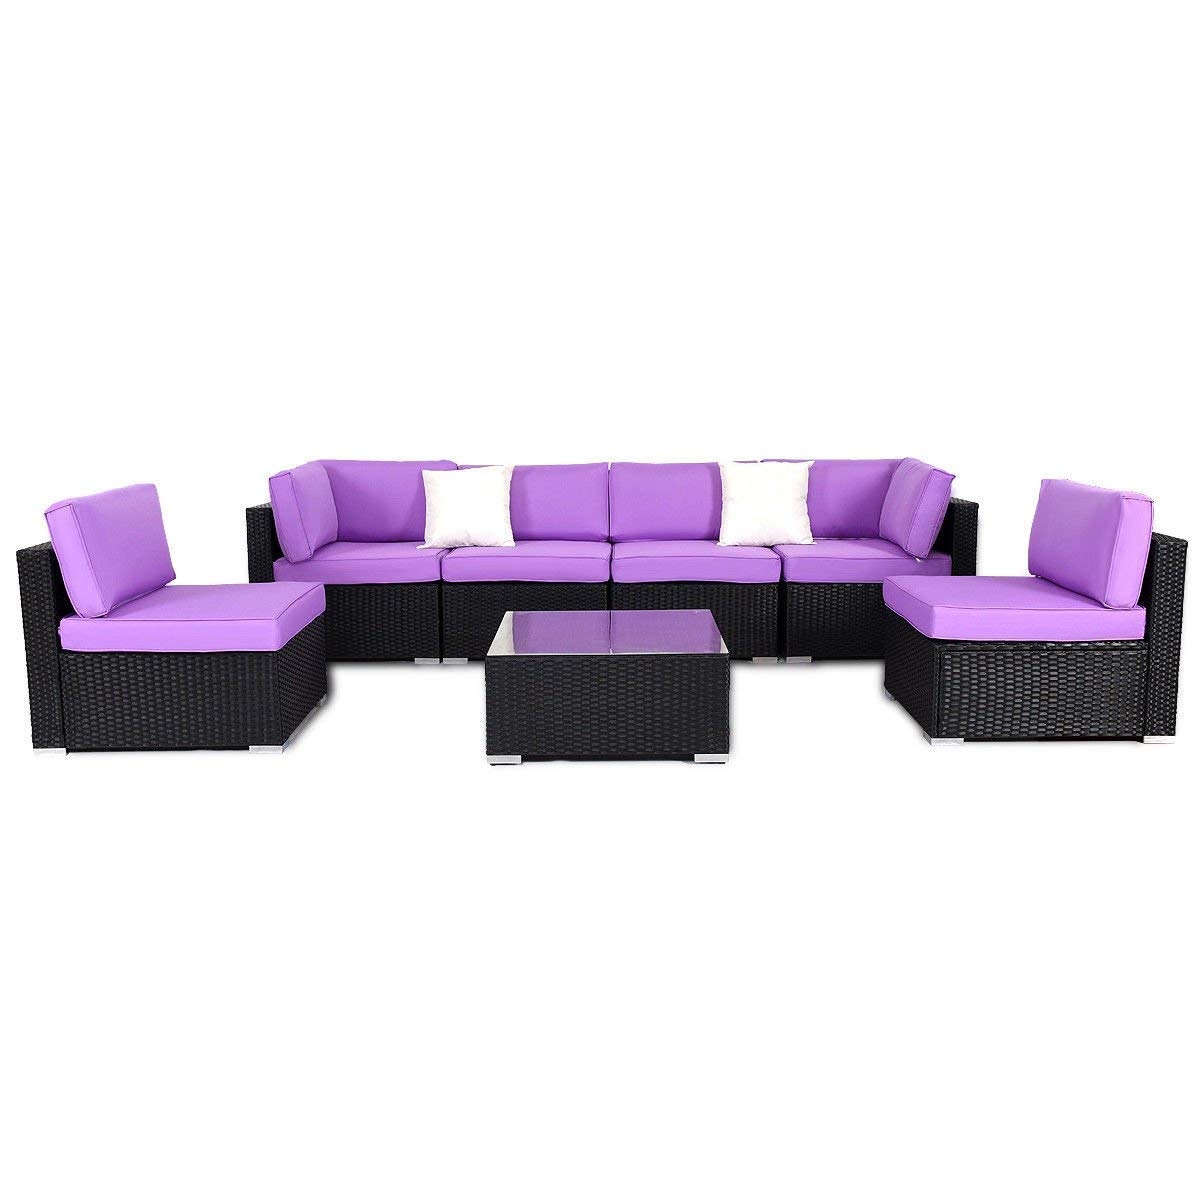 Giantex 7 PC Outdoor Patio PE Rattan Wicker Sofa Sectional Furniture Set with Purple Cushion, 2 Pillows Tempered Glass Top Tea Table, Backyard Patio Garden Sofa Set with No-Slip Foot Design